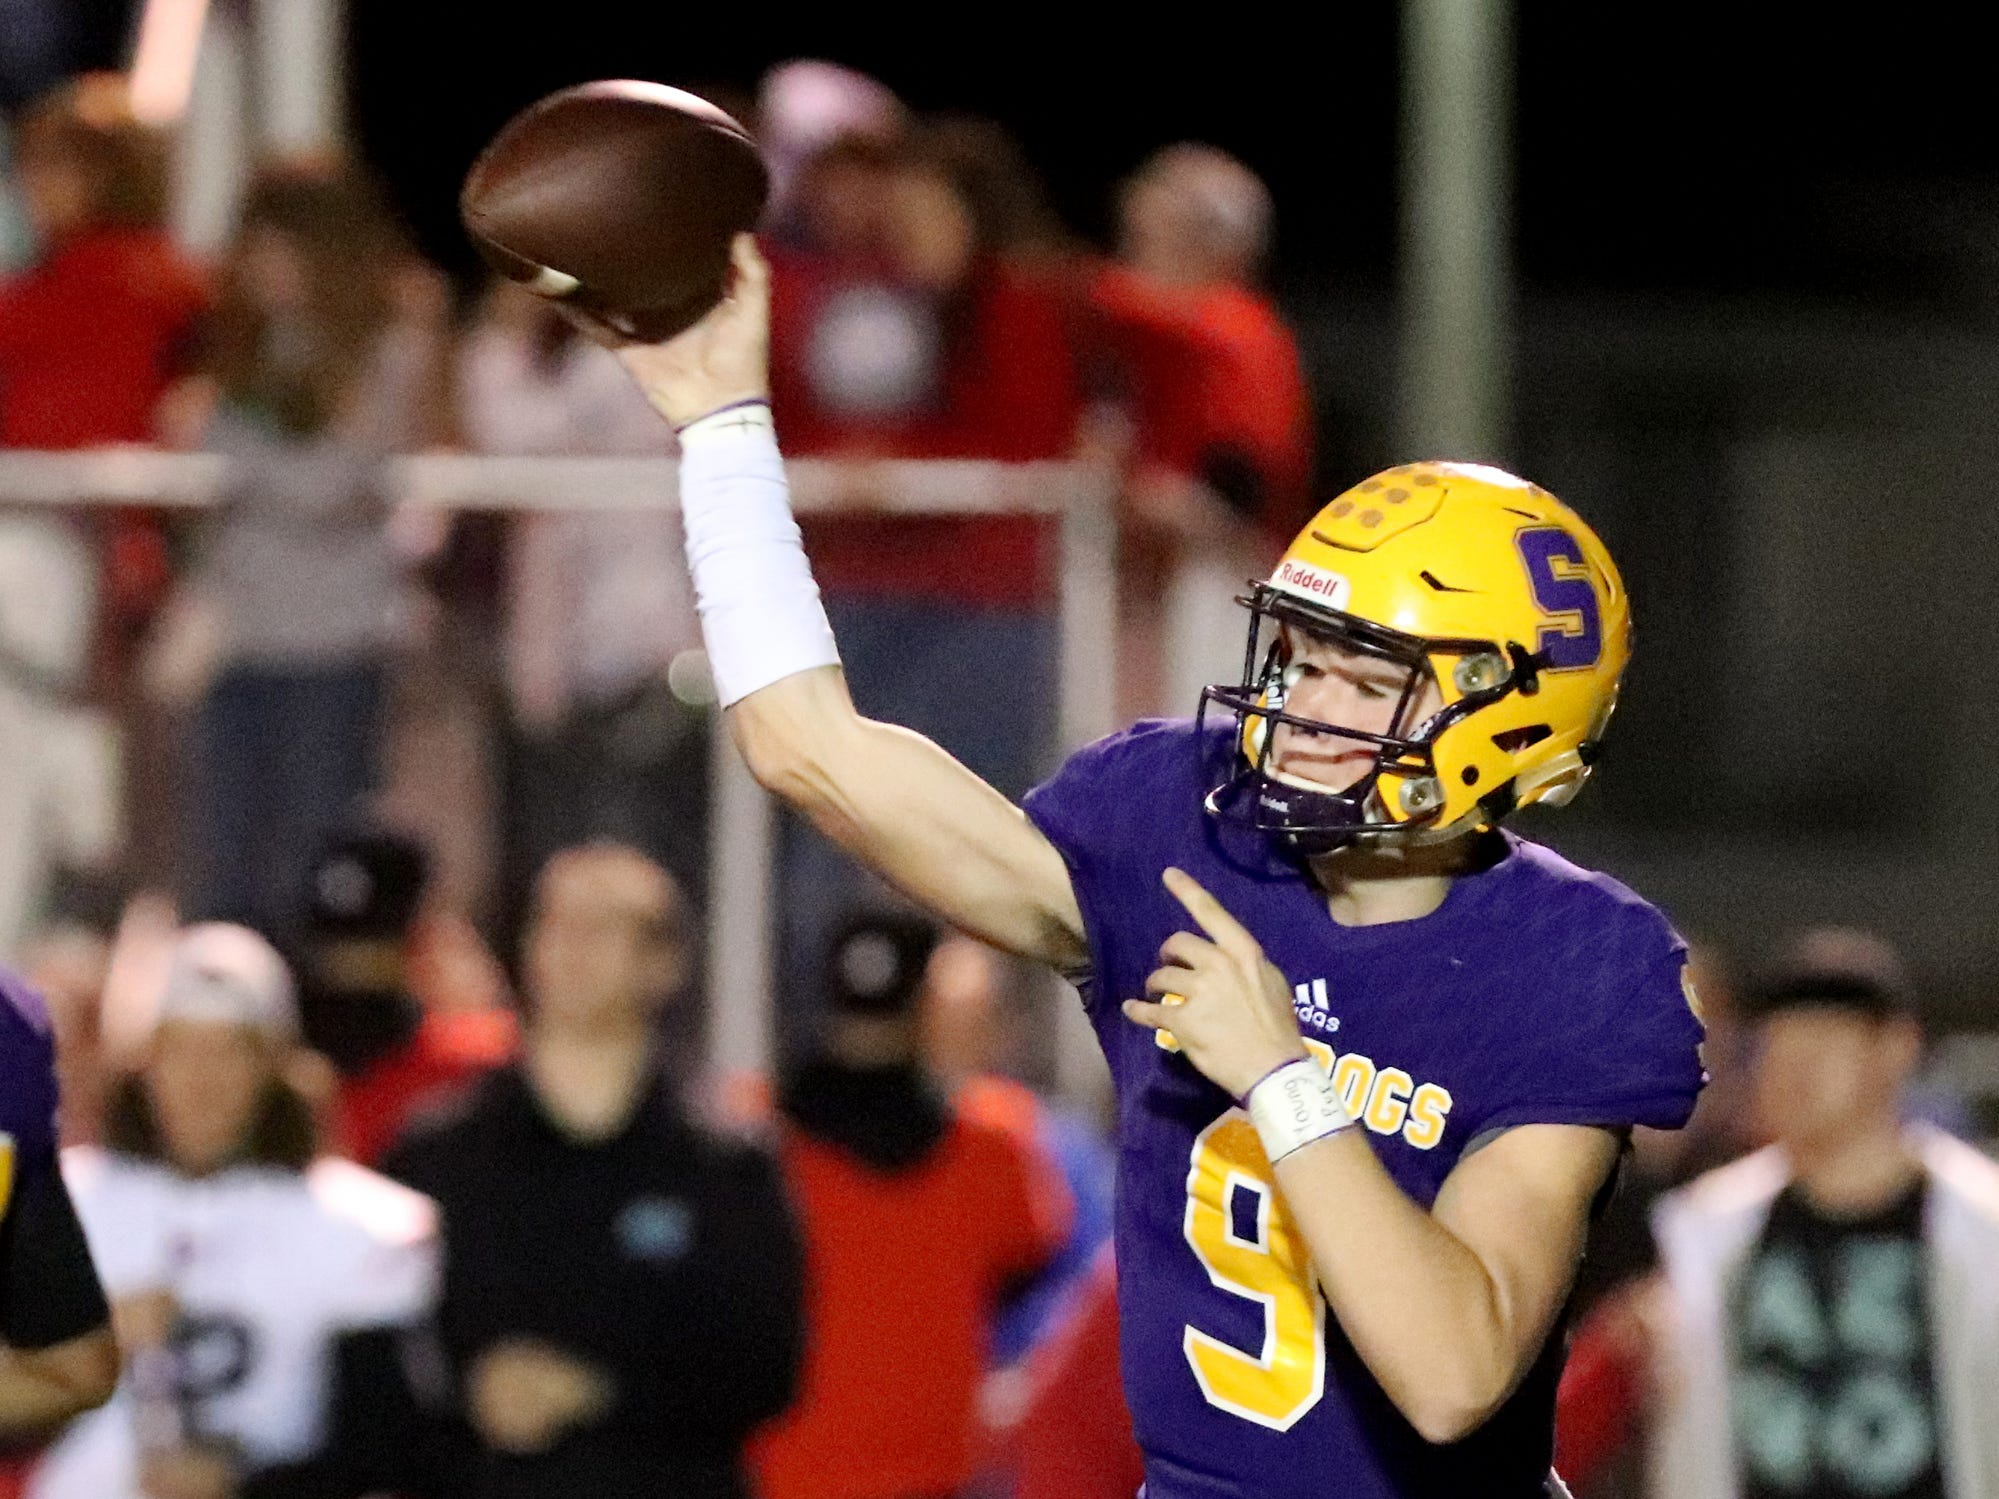 Smyrna's quarterback Alex Bannister (9) passes the football during the game against Stewarts Creek at Smyrna High School on Friday, Oct. 12, 2018.